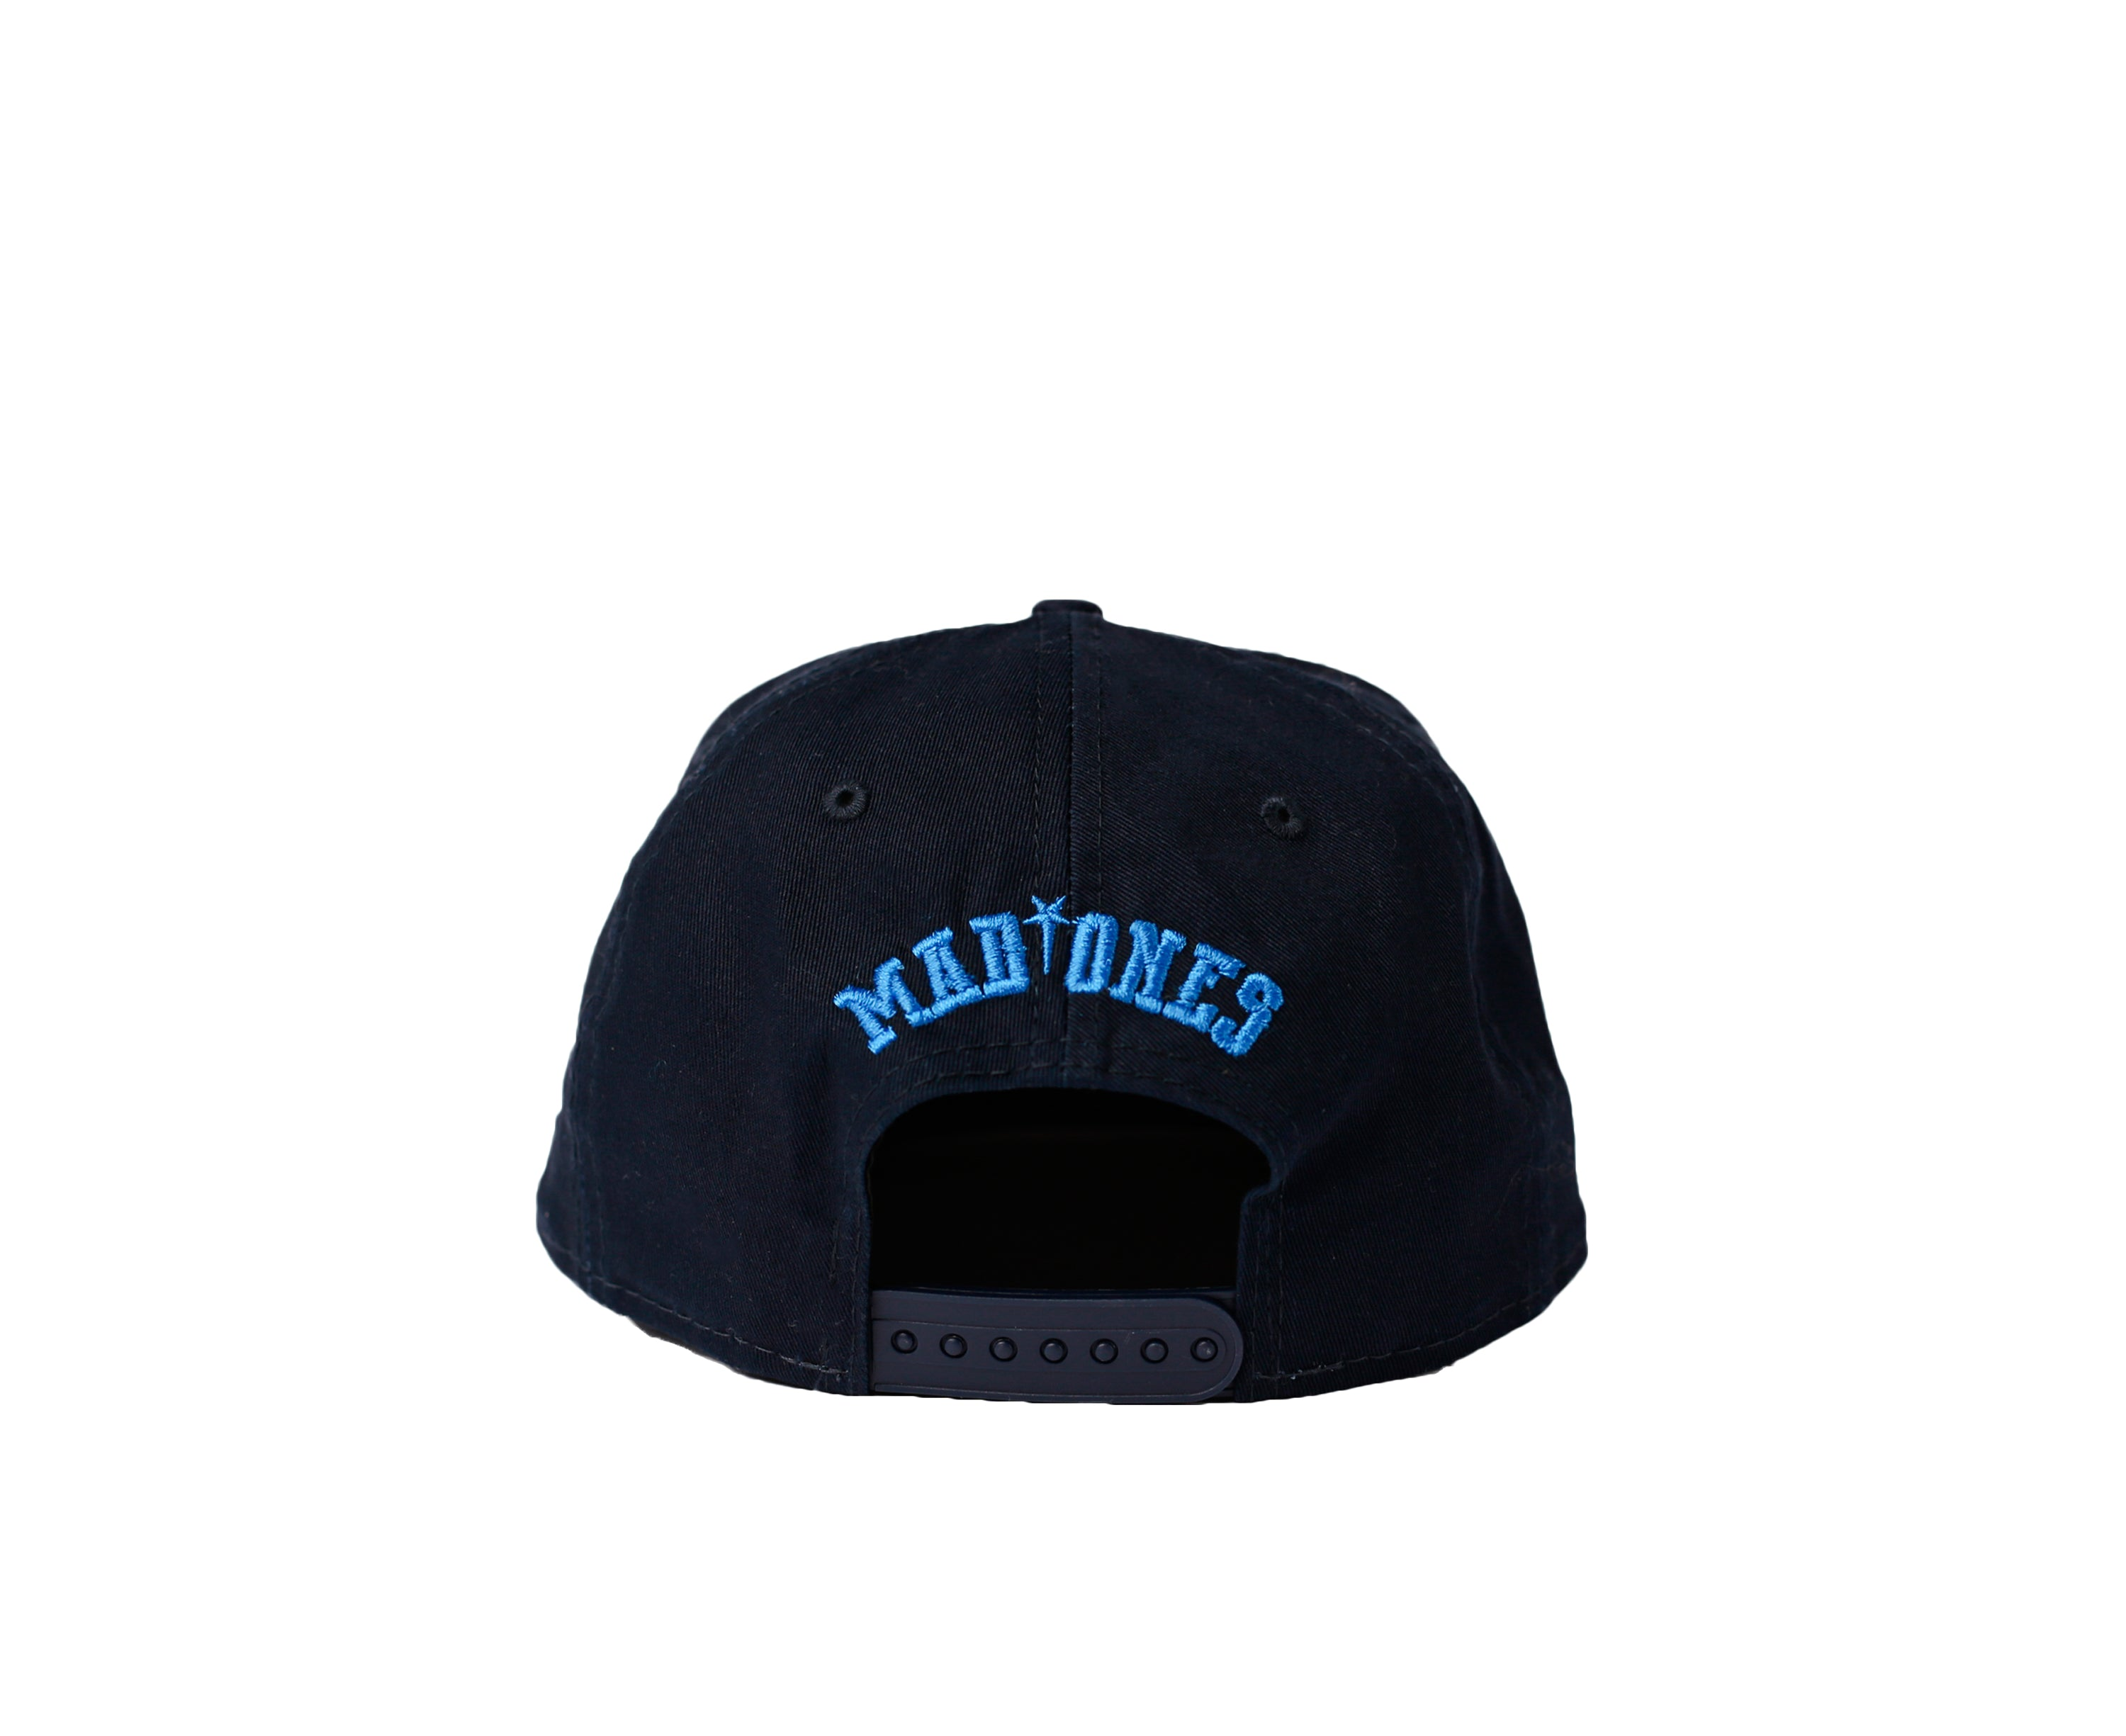 THE MAD ONES - NEW ERA - SNAP BACK